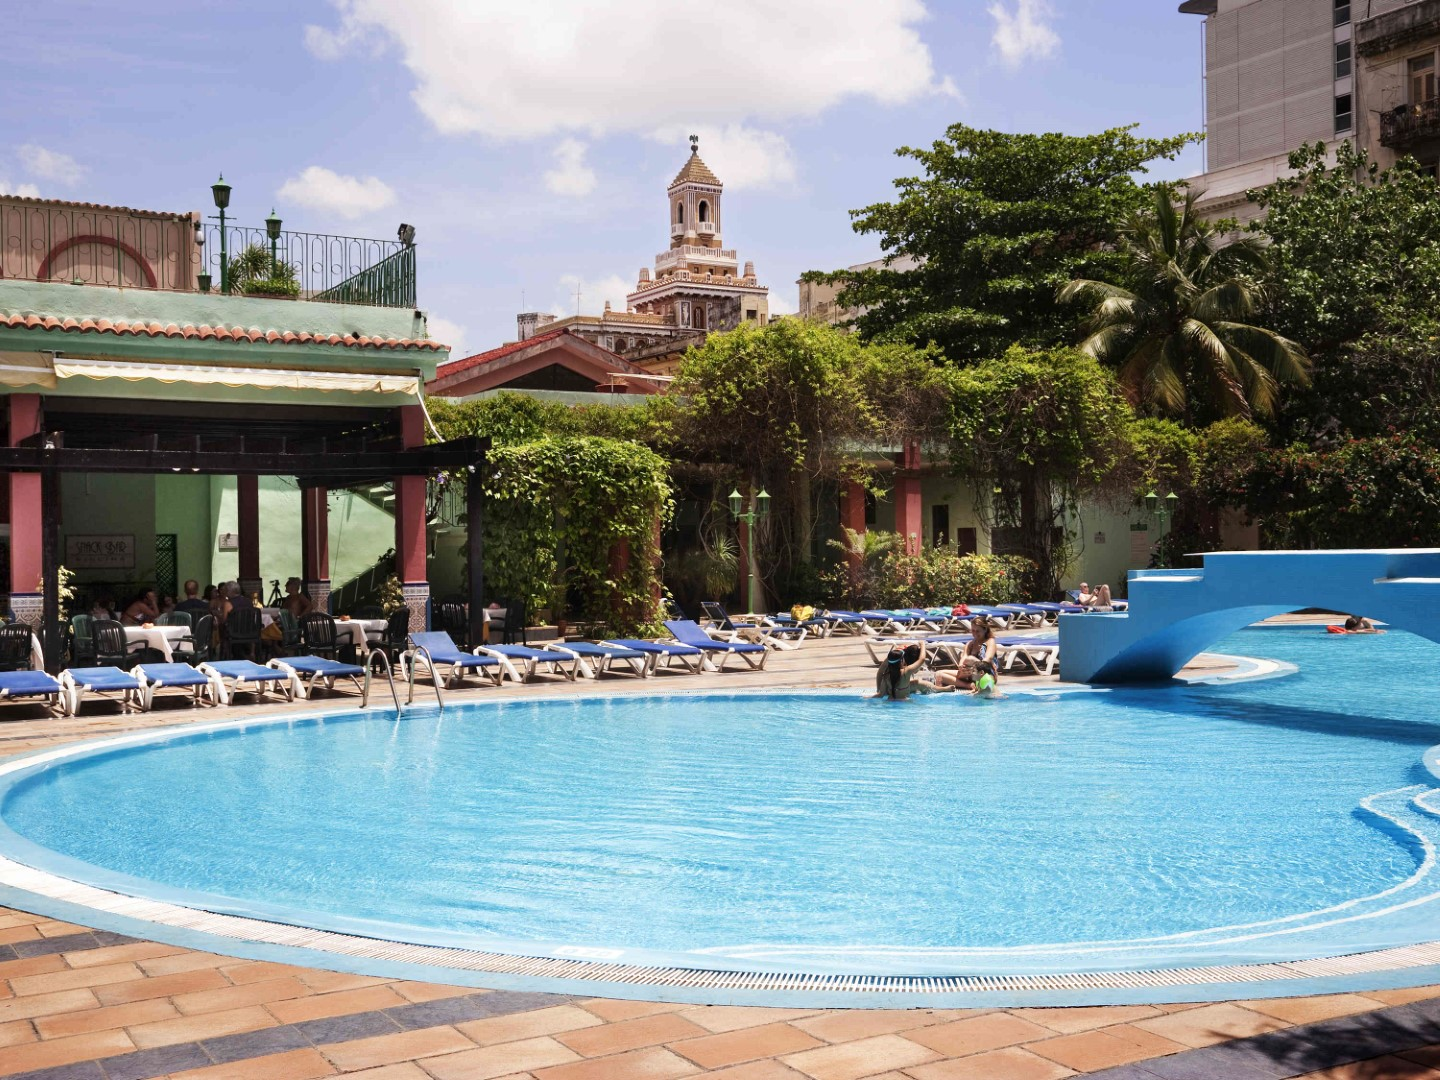 Pool at Hotel Sevilla in Havana, Cuba